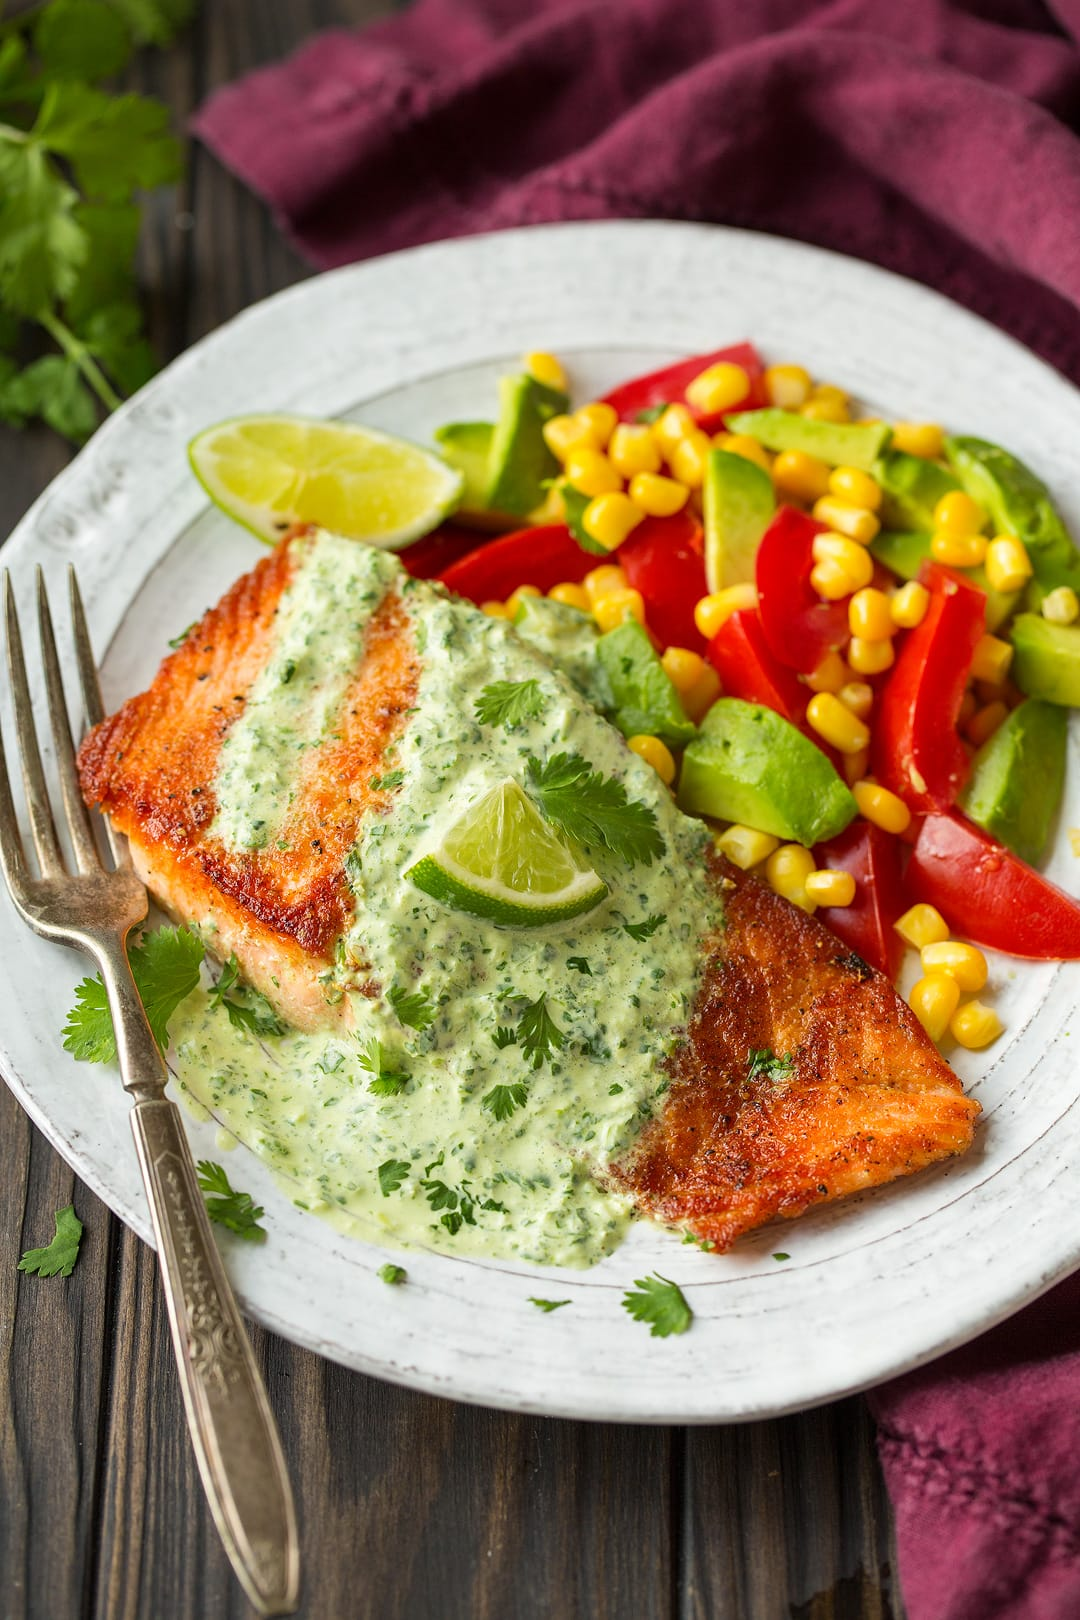 Skillet Seared Salmon with Creamy Cilantro Lime Sauce - Cooking Classy